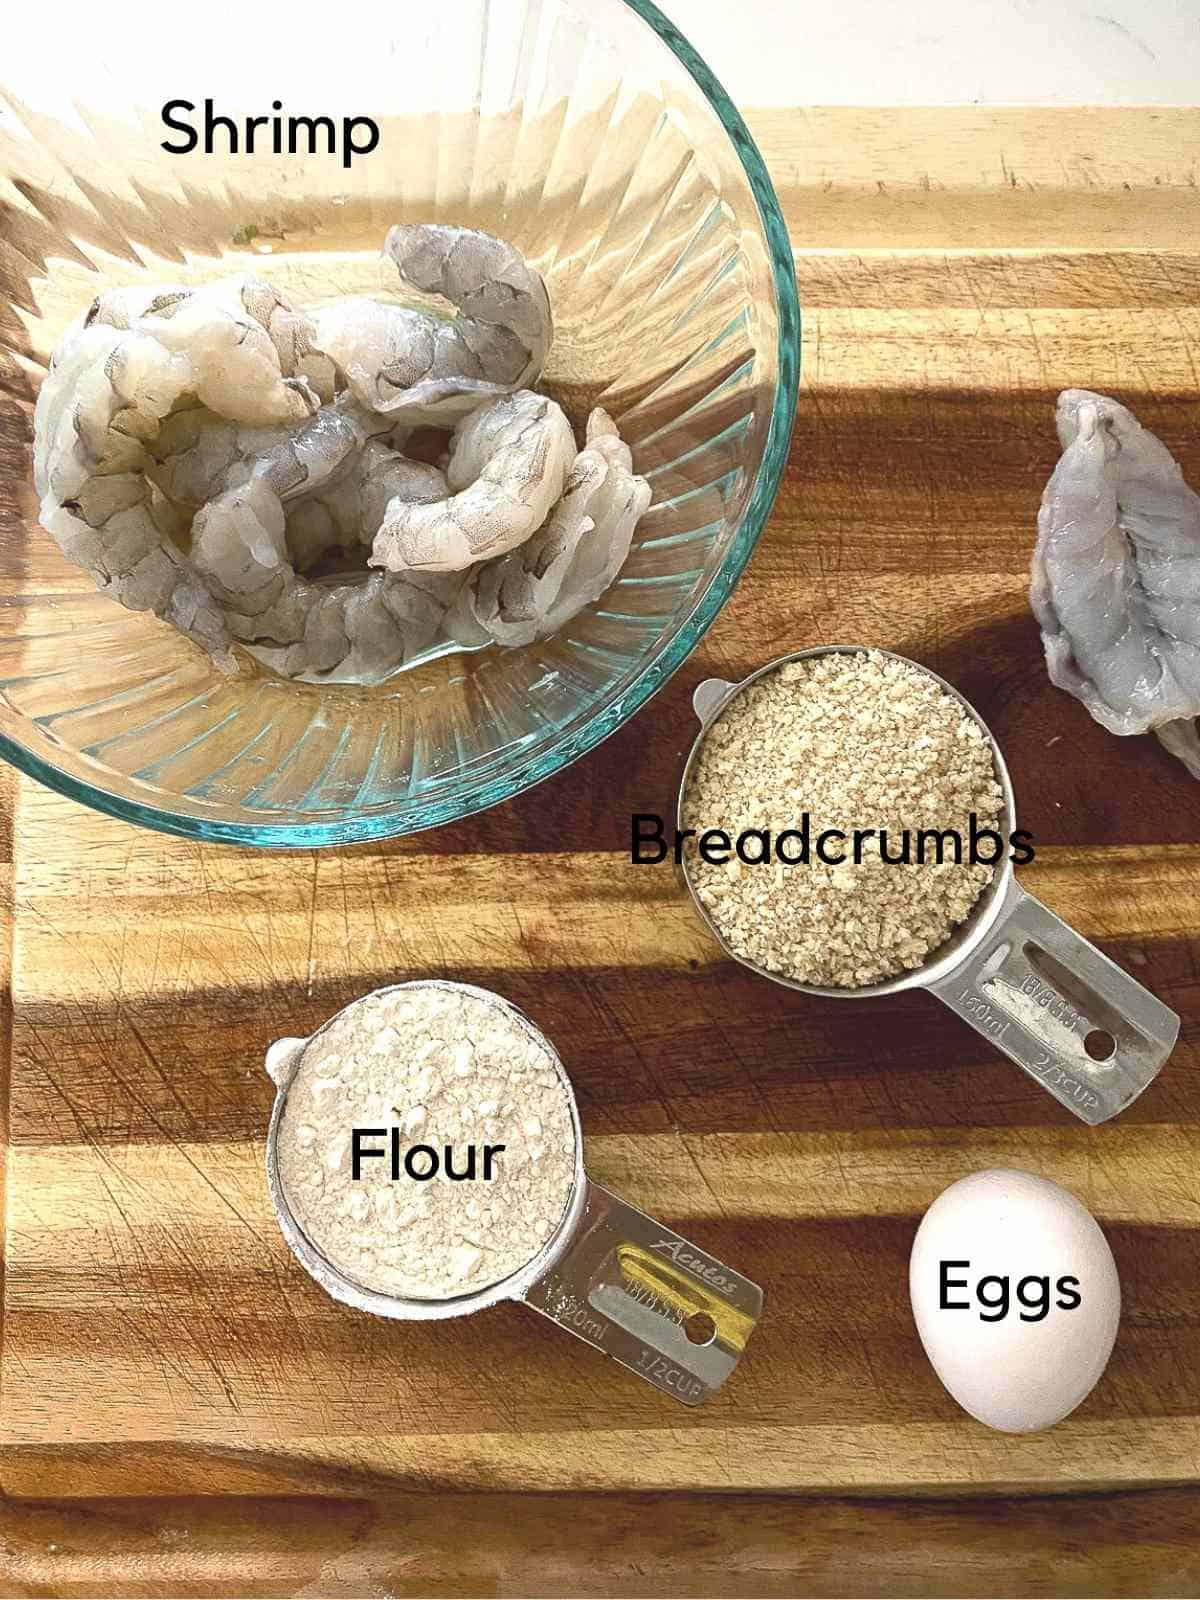 Ingredients to make butterflied shrimp on cutting board.